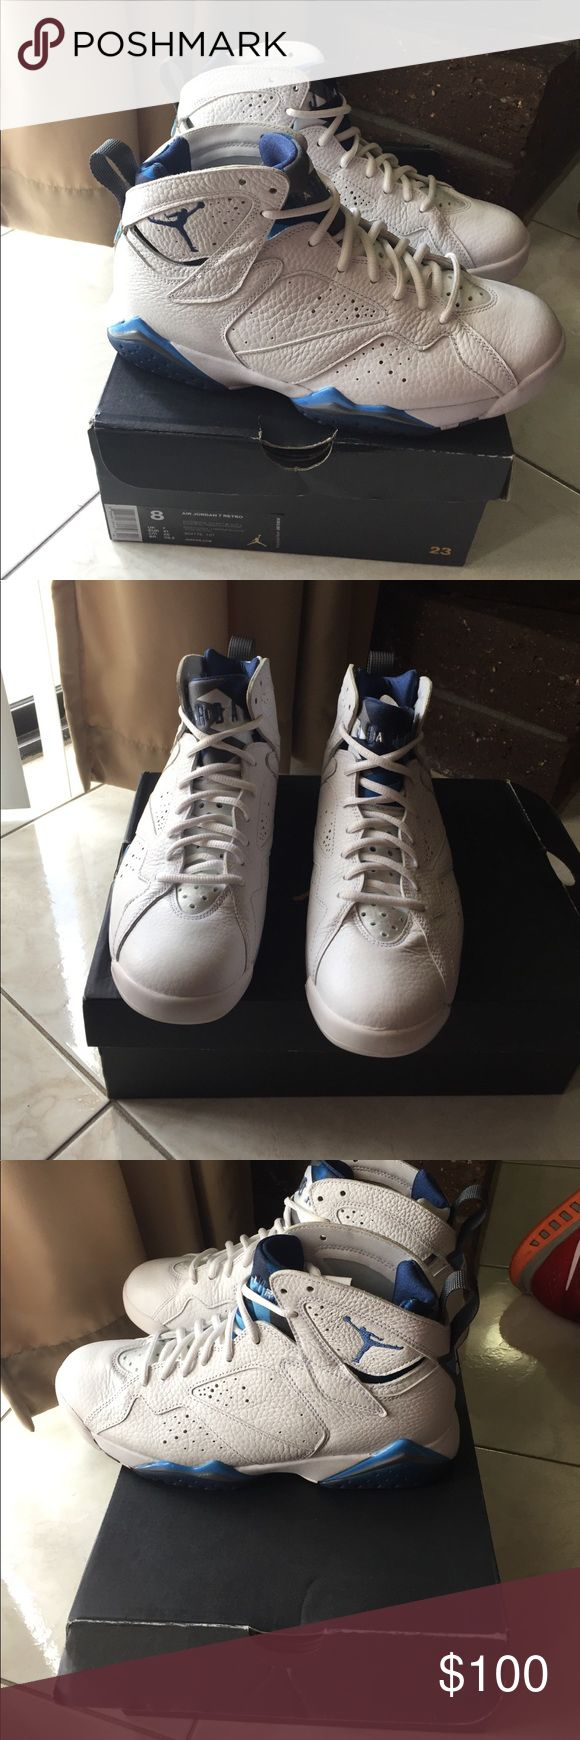 Jordan retro 7 Wore maybe twice, still look and smell brand new Jordan Shoes Athletic Shoes